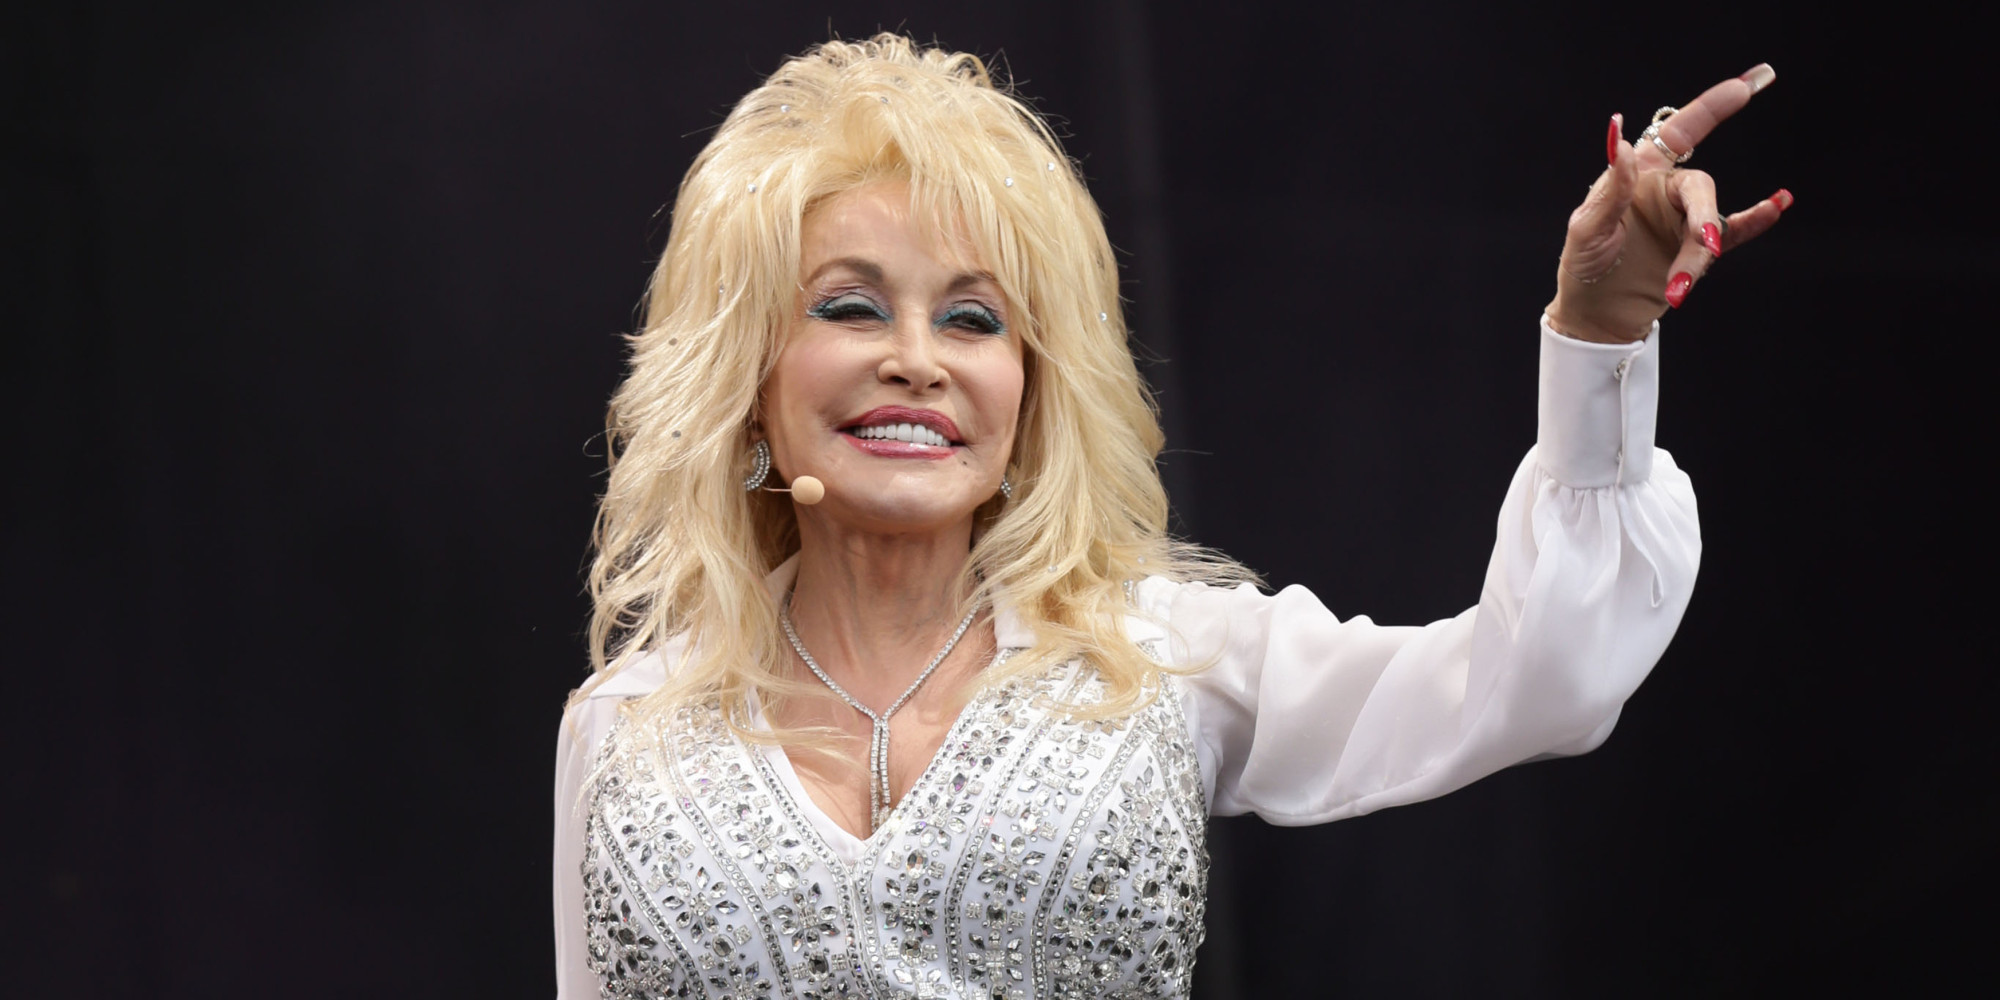 Dolly Parton: Glastonbury 2015: Can Anybody Top Dolly Parton's Festival